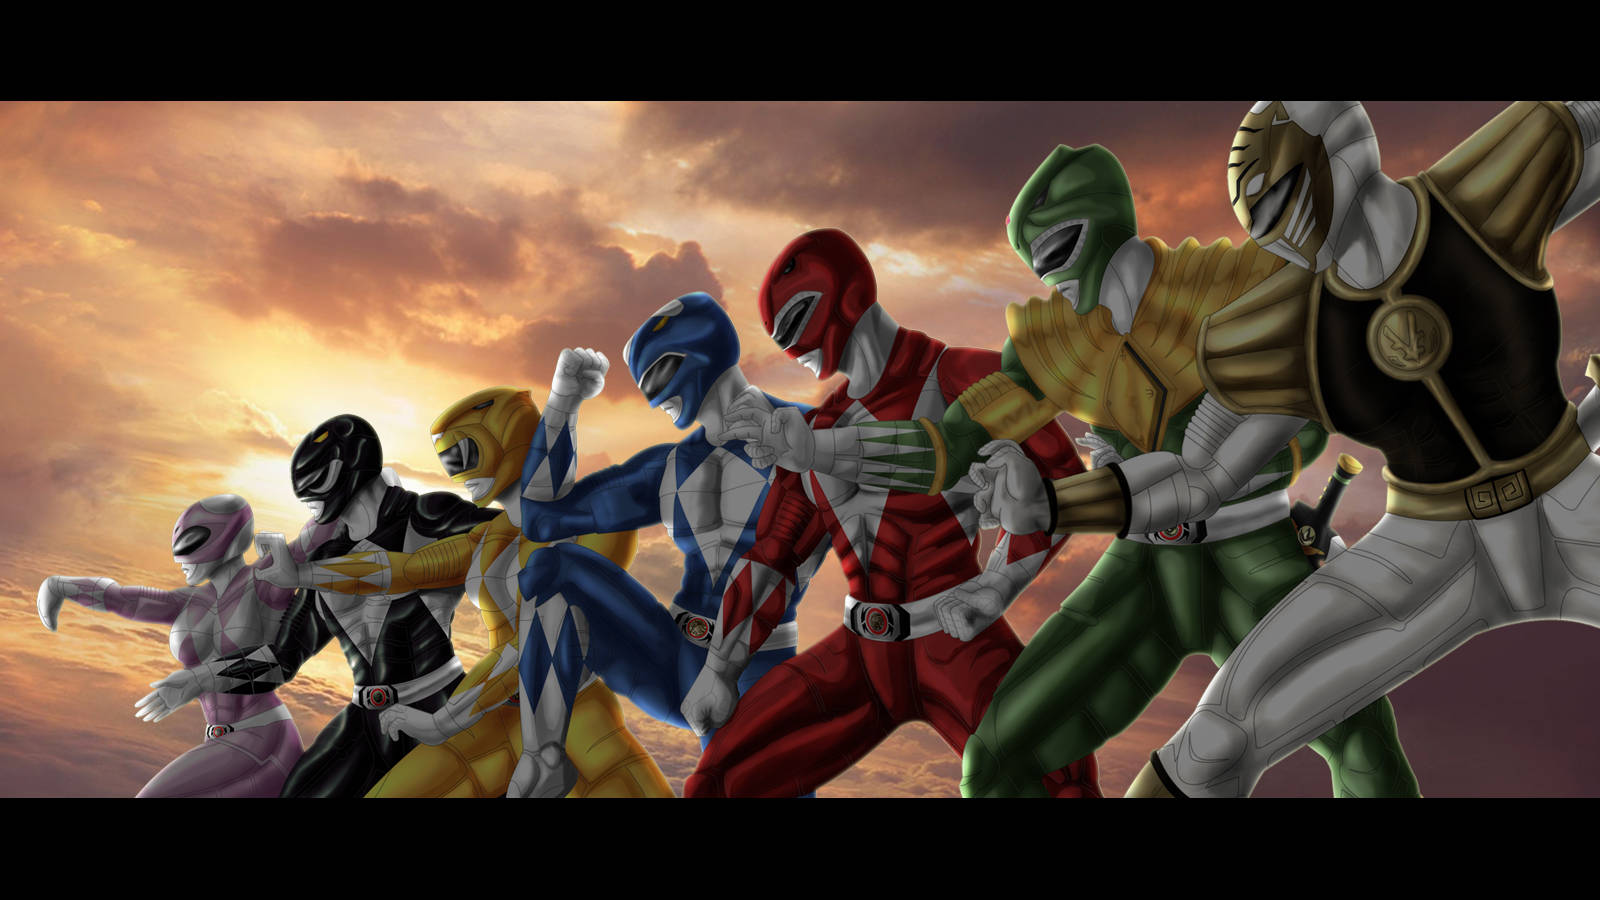 power rangers wallpaper hd wallpapeer free wallpapers downloads 1600x900